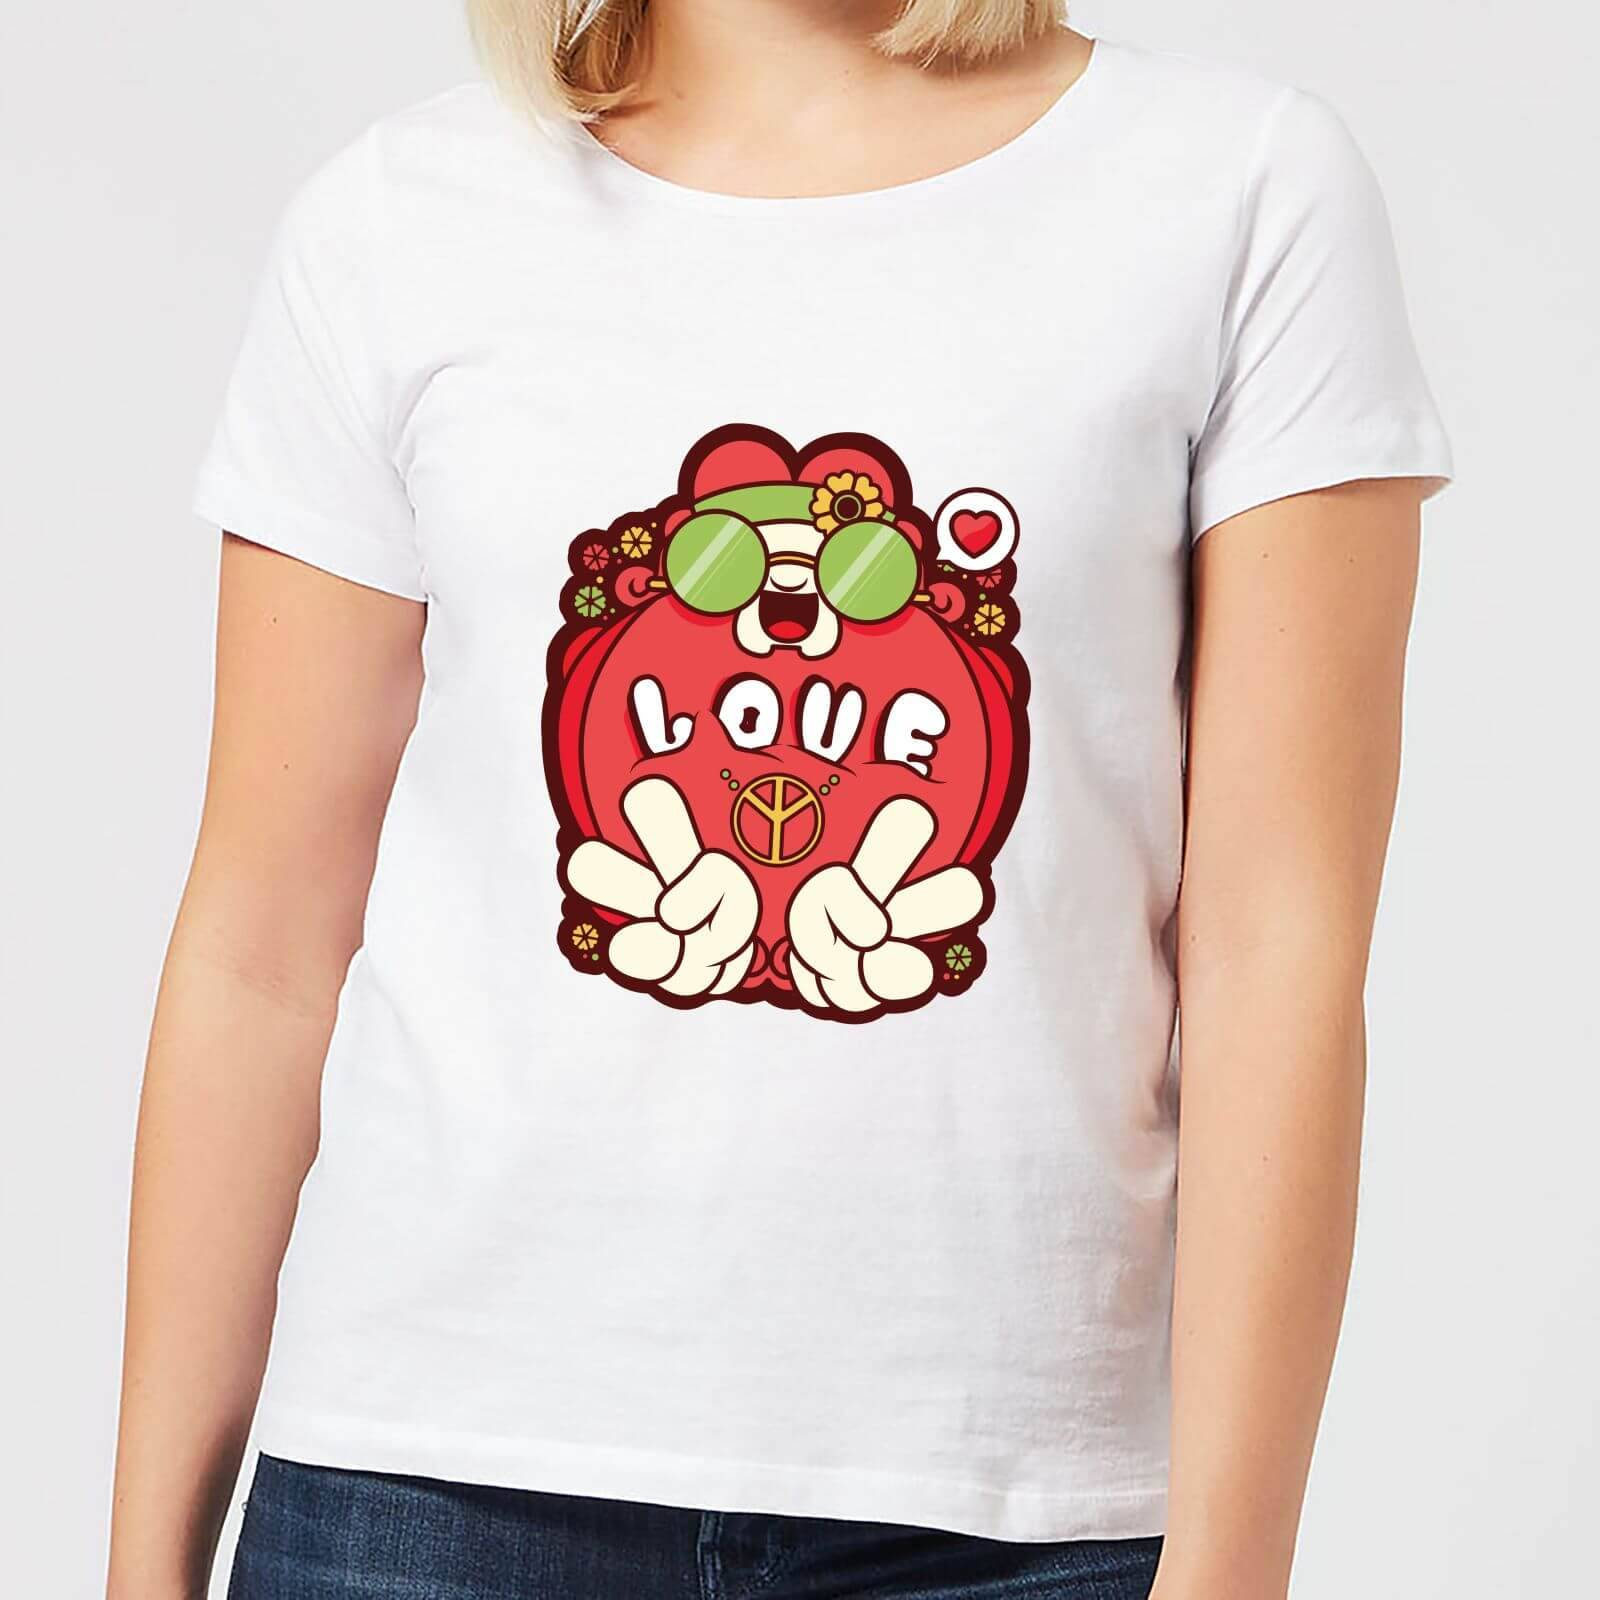 IWOOT Hippie Love Cartoon Women's T-Shirt - White - XXL - White